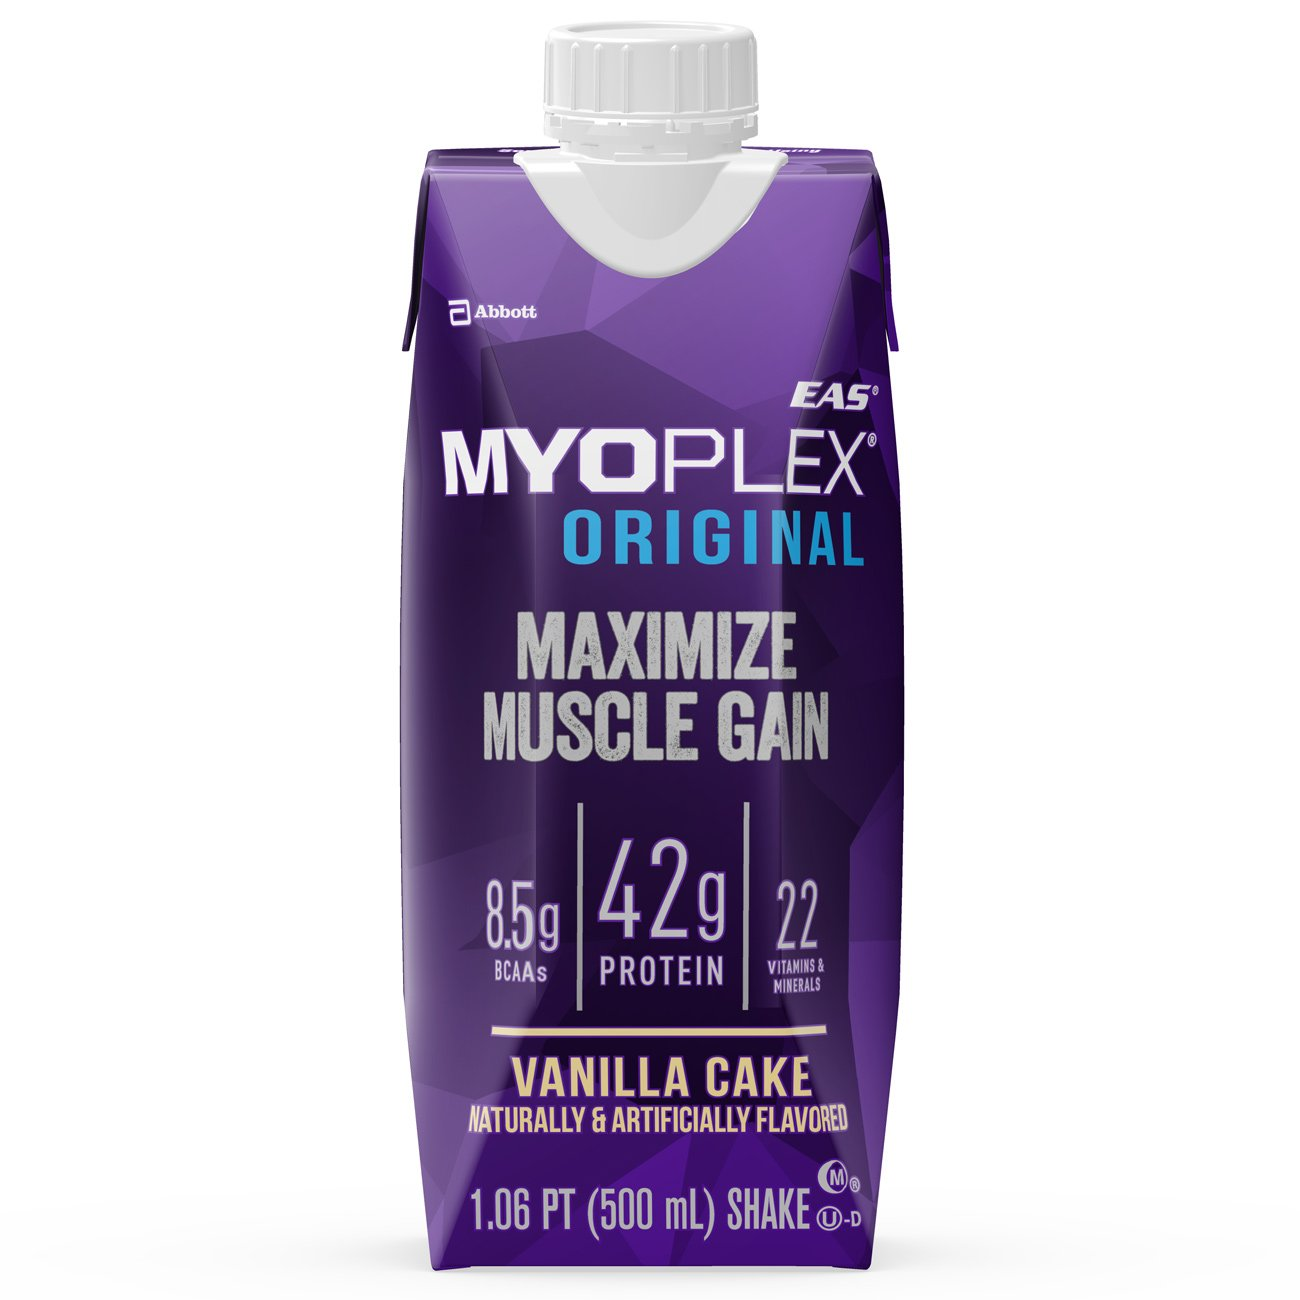 EAS Myoplex Original Ready-To-Drink Protein Shake, French Vanilla/Vanilla Cake, 17 oz, 4 count (Pack of 3), Packaging May Vary